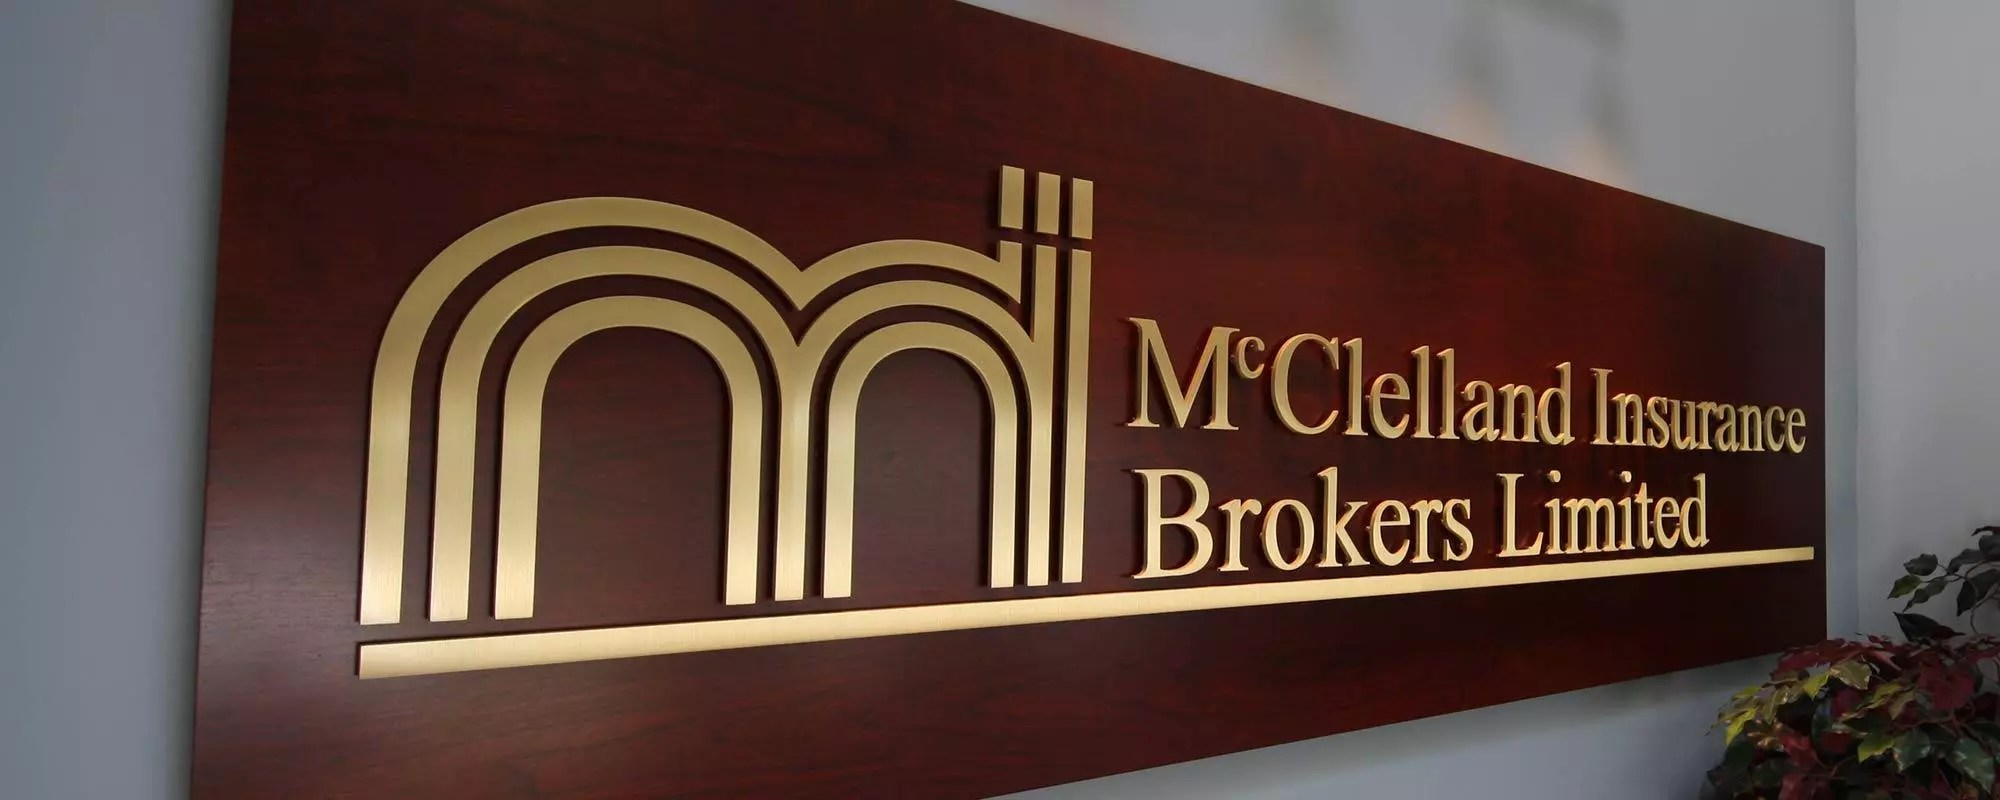 McClelland Insurance Brokers Limited